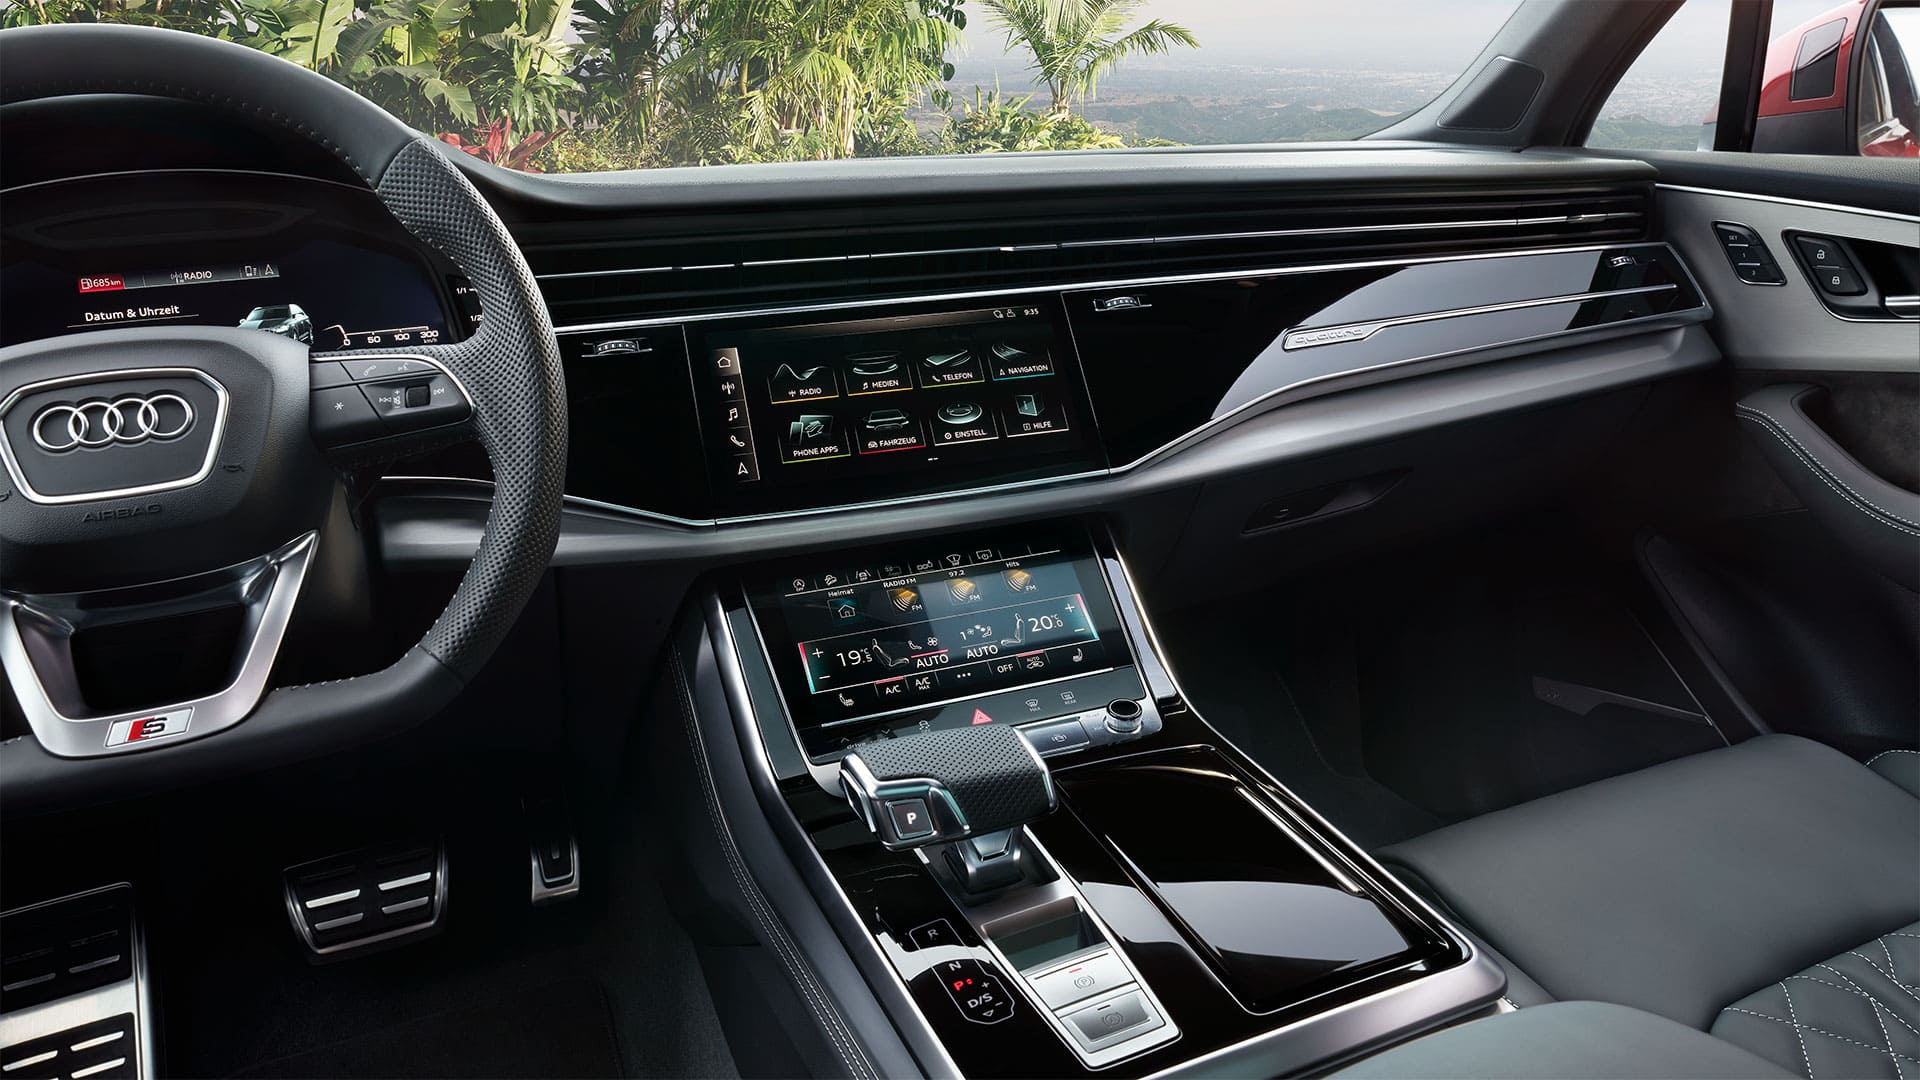 MMI Navigation plus mit MMI touch im Audi Q7